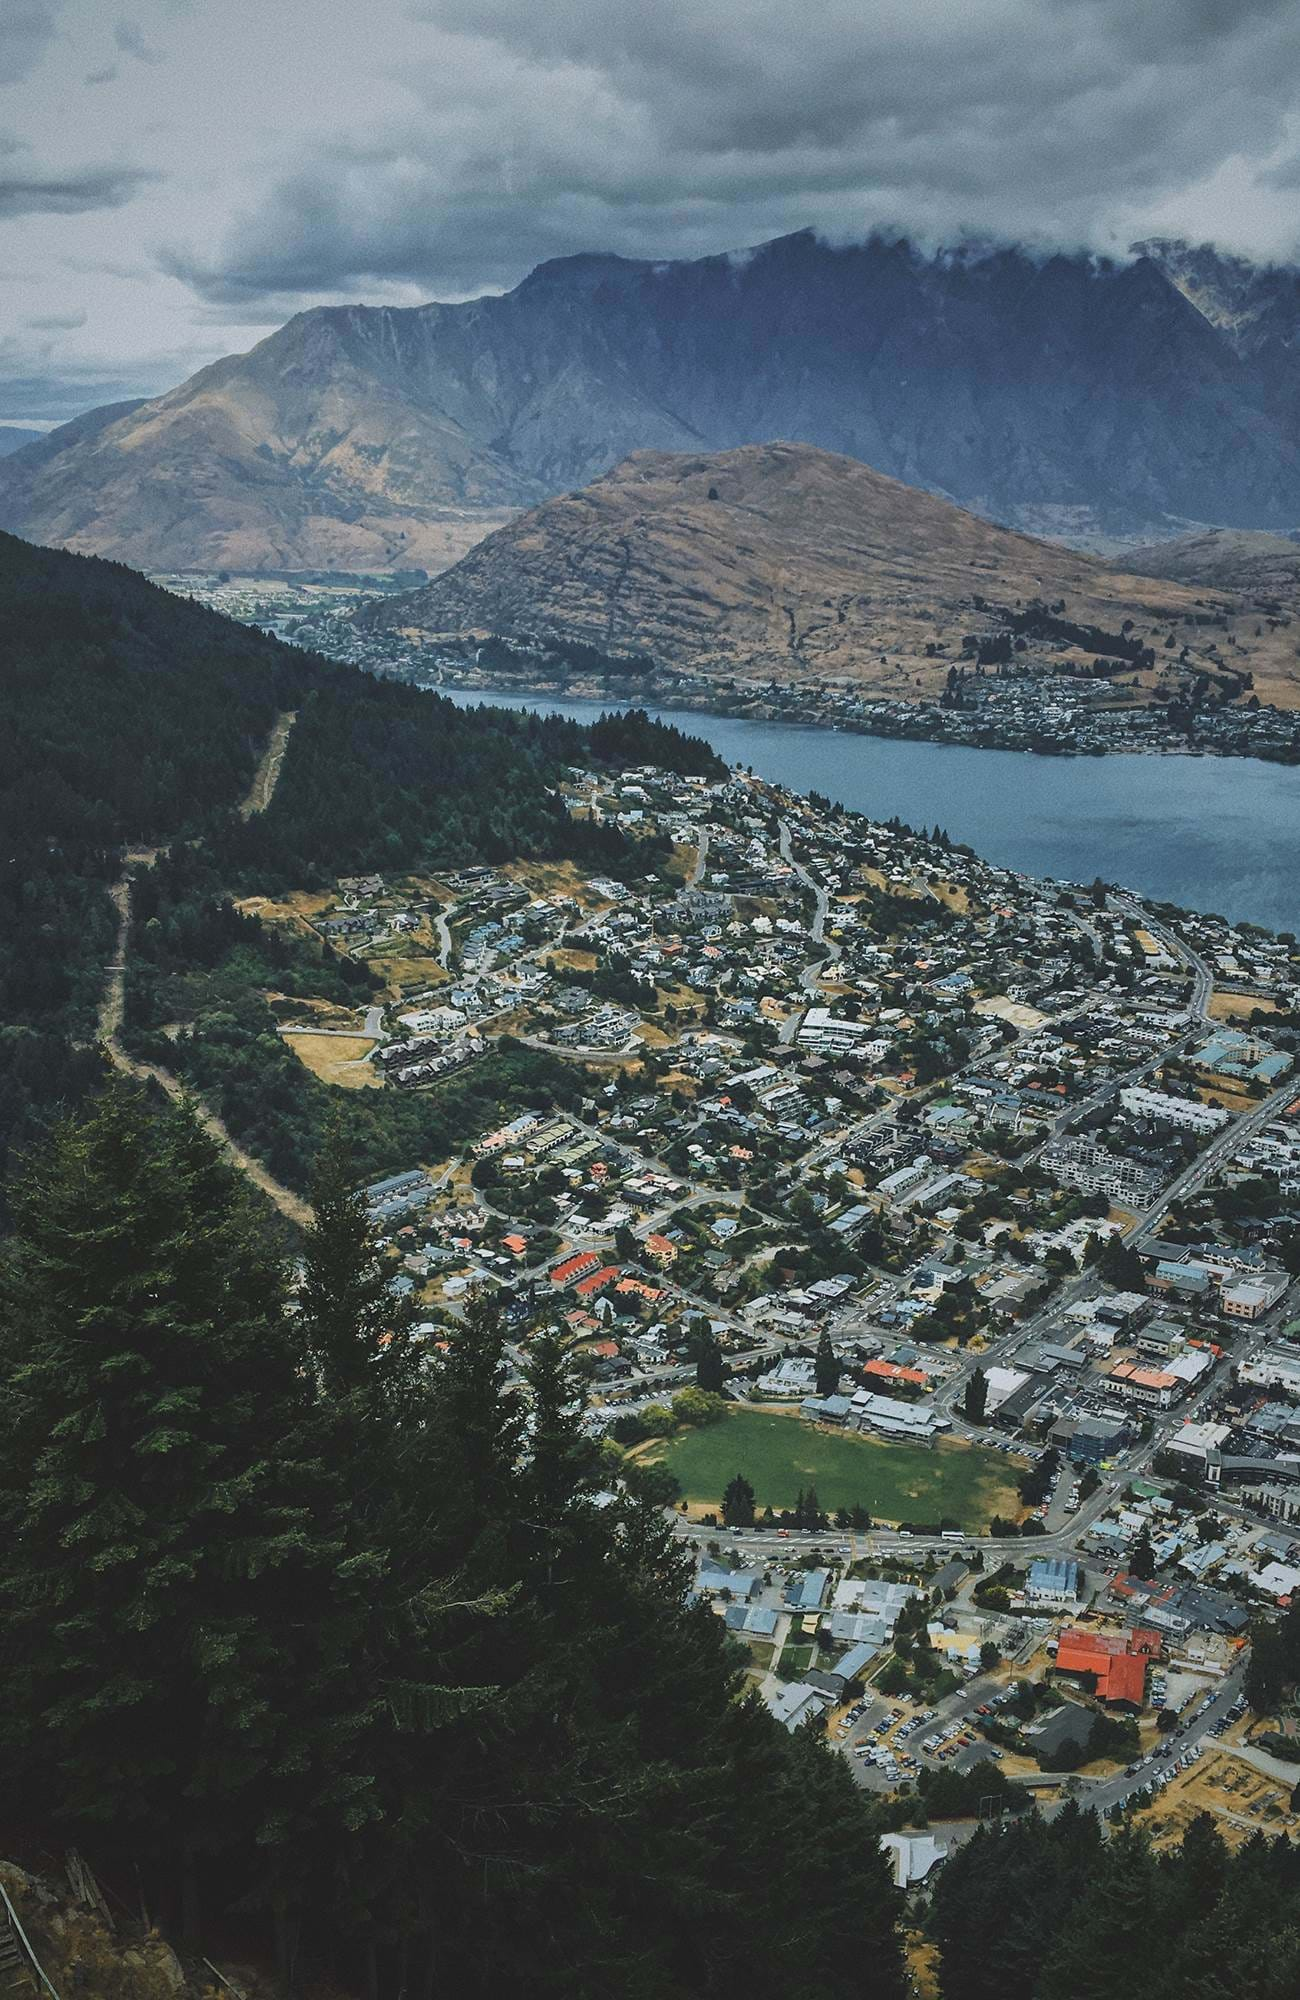 queenstown-city-view-from-above-sidebar